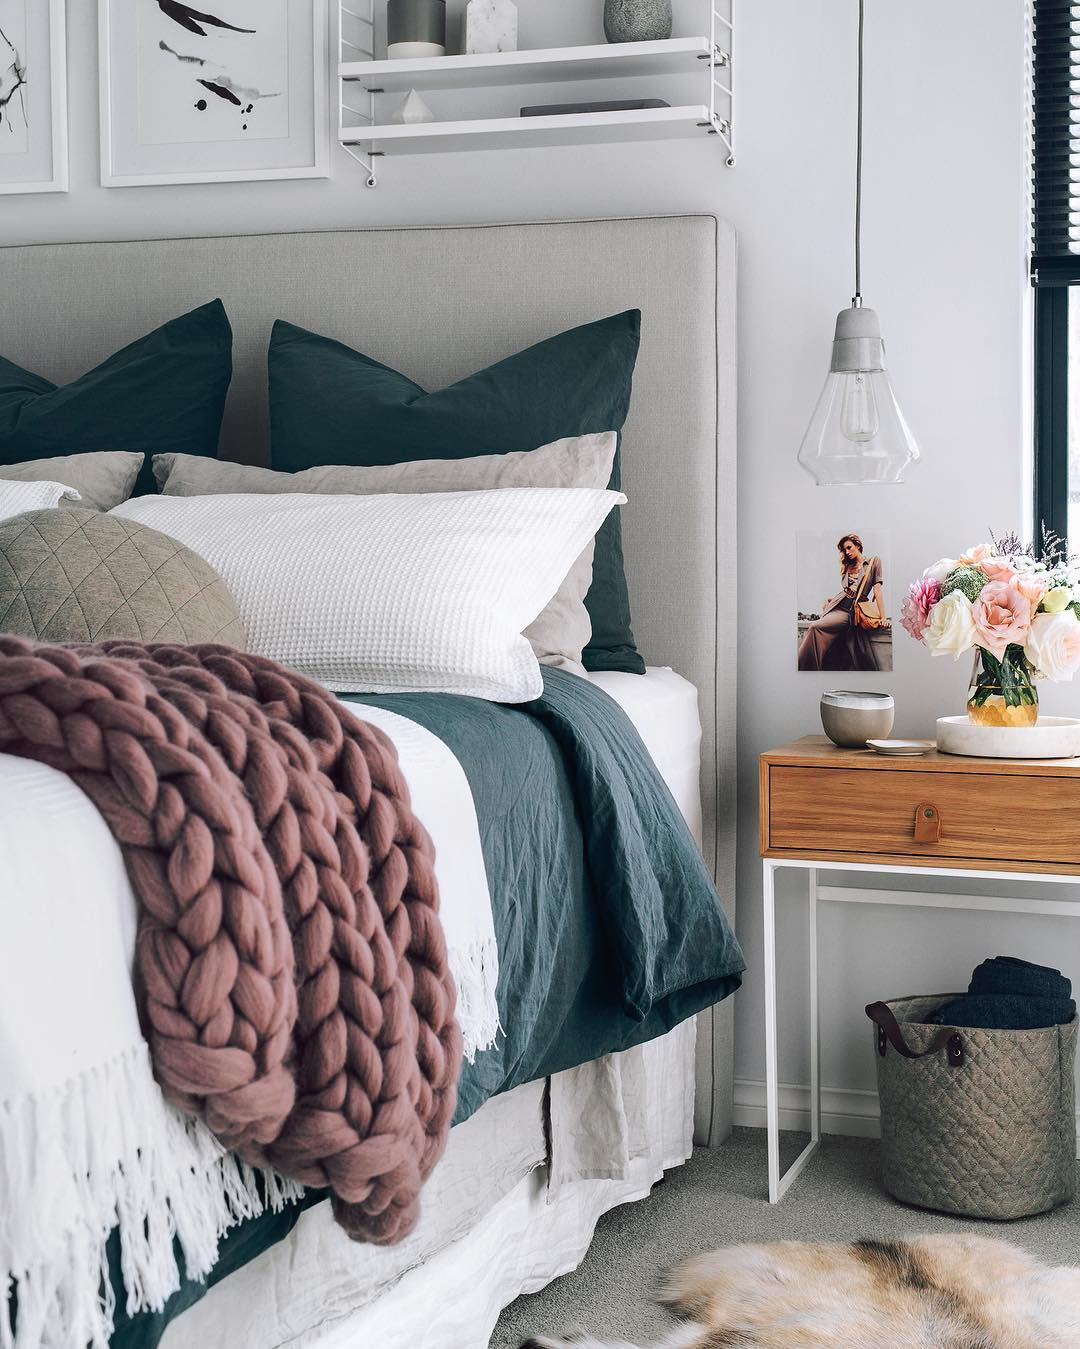 Hygge Interior Design Style and Life Philosophy: Cozy Danish Tradition. Thick woven clothes and delicate bed linen in cozy arranged bedroom